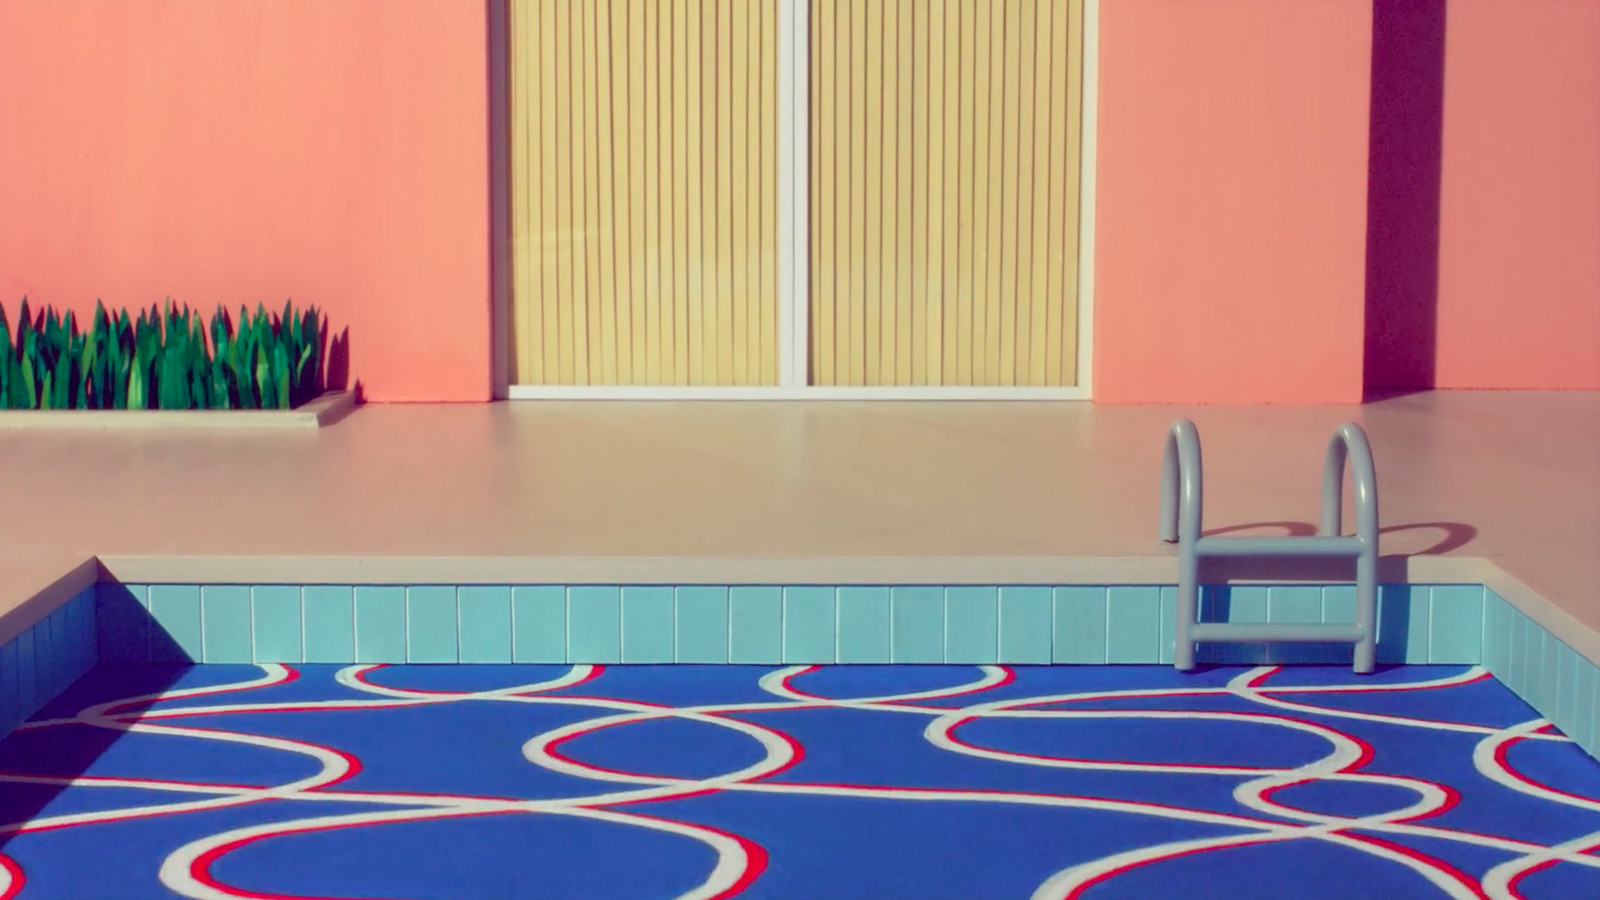 David Hockney S Paintings Of Wealthy California Suburbs Get Stop Motion Animation Treatment Curbed